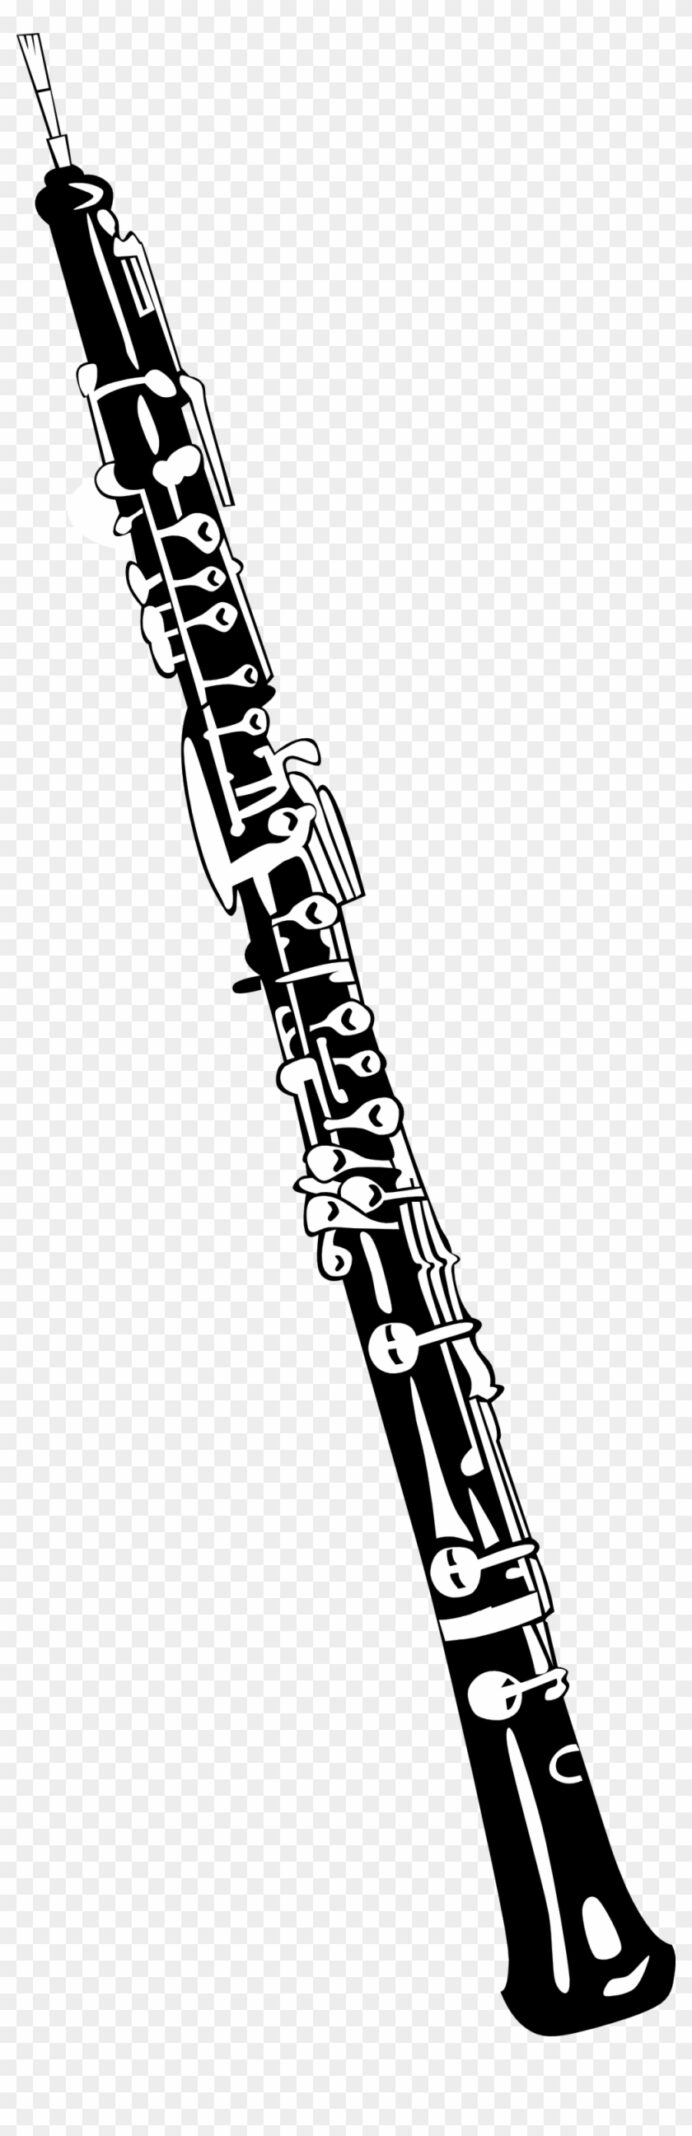 oboe clipart coloring free transparent images clarinet paint kit for kids red and blue coloring pages Clarinet Coloring Page